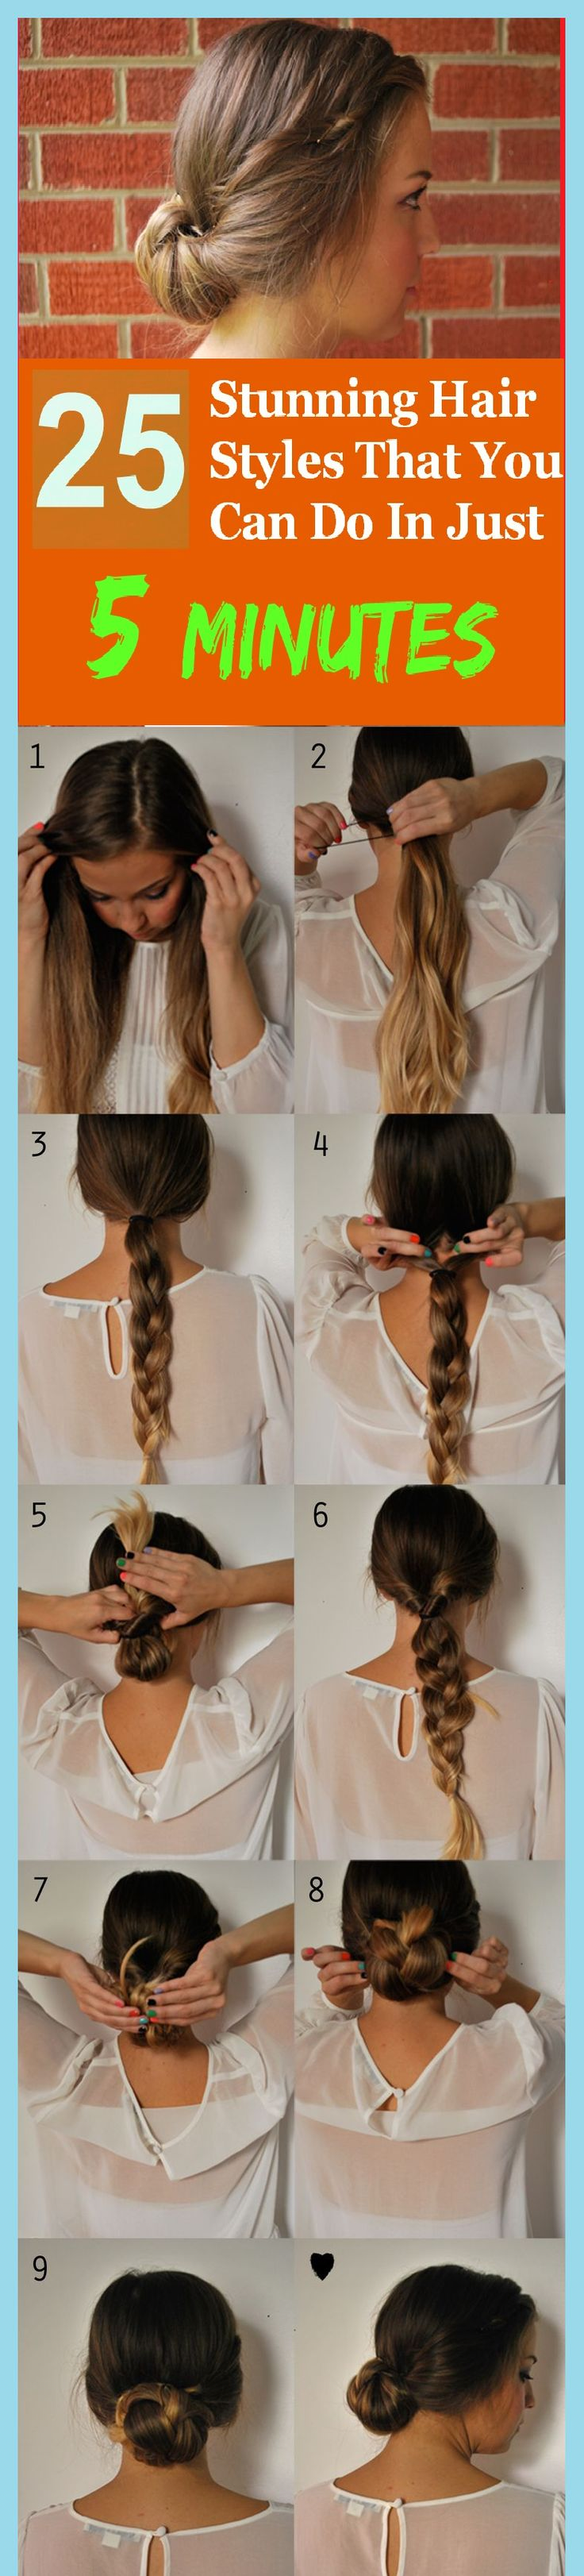 25 Stunning Hair Styles That You Can Do In Just 5 Minutes - I really need to start practicing civilian hair lol